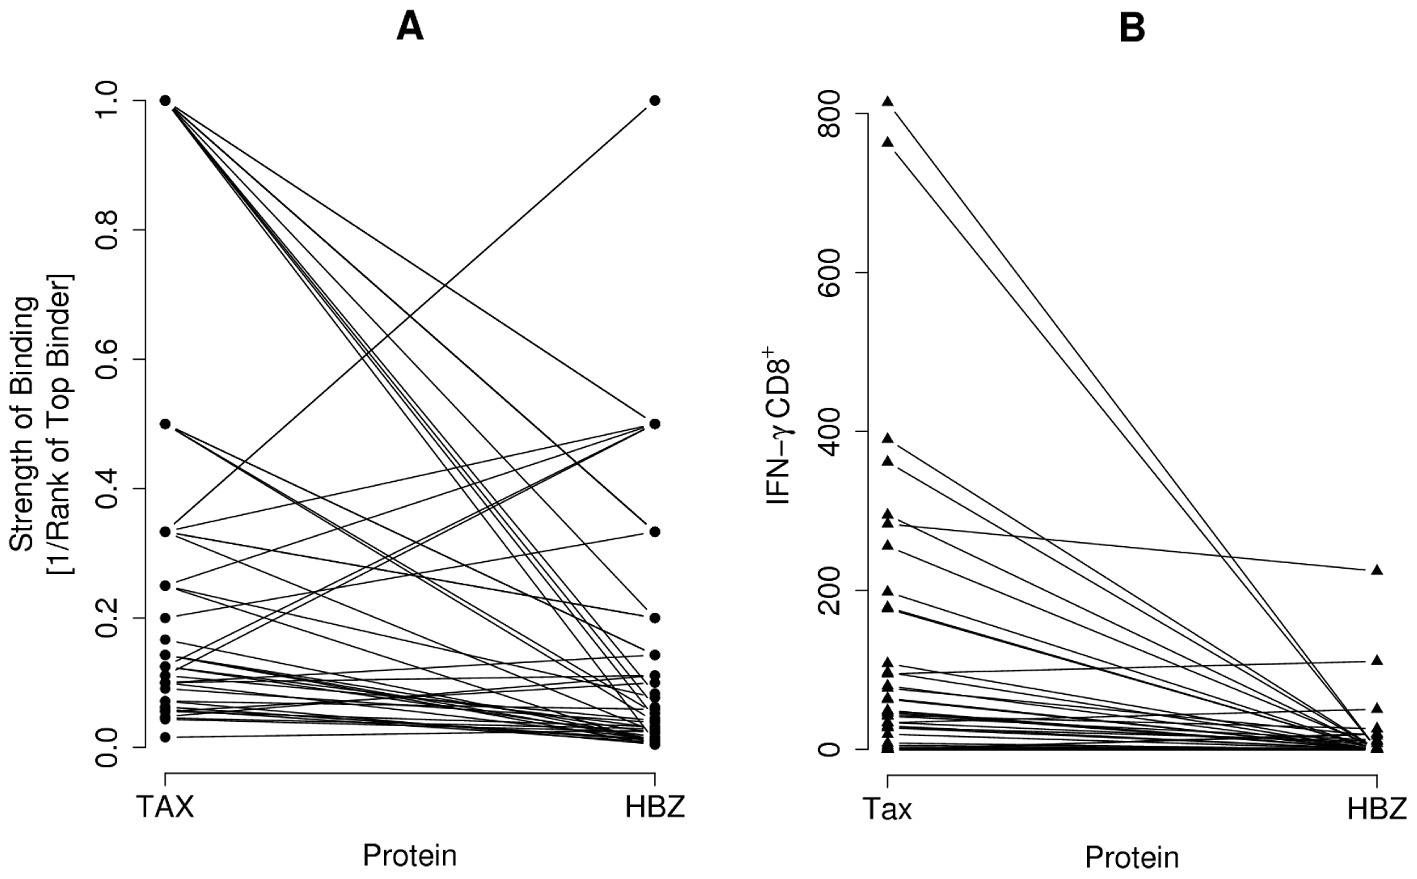 The comparative immunogenicity of HBZ and Tax.